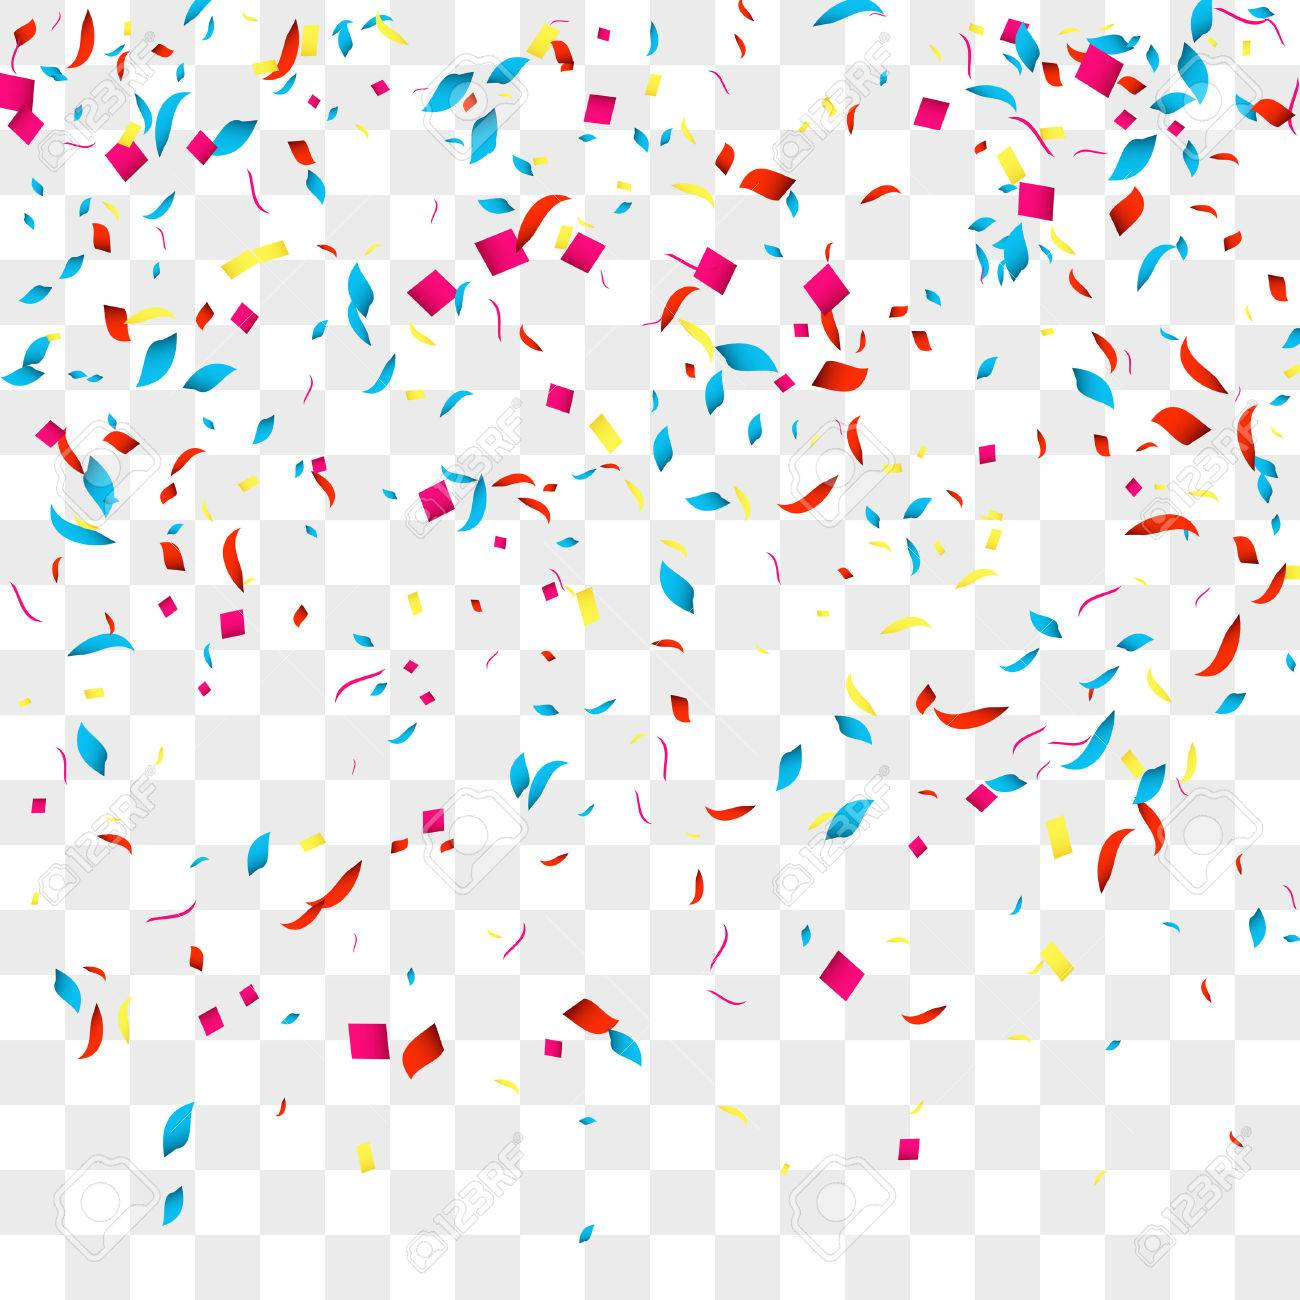 Confetti clipart transparent background 1 » Clipart Station.